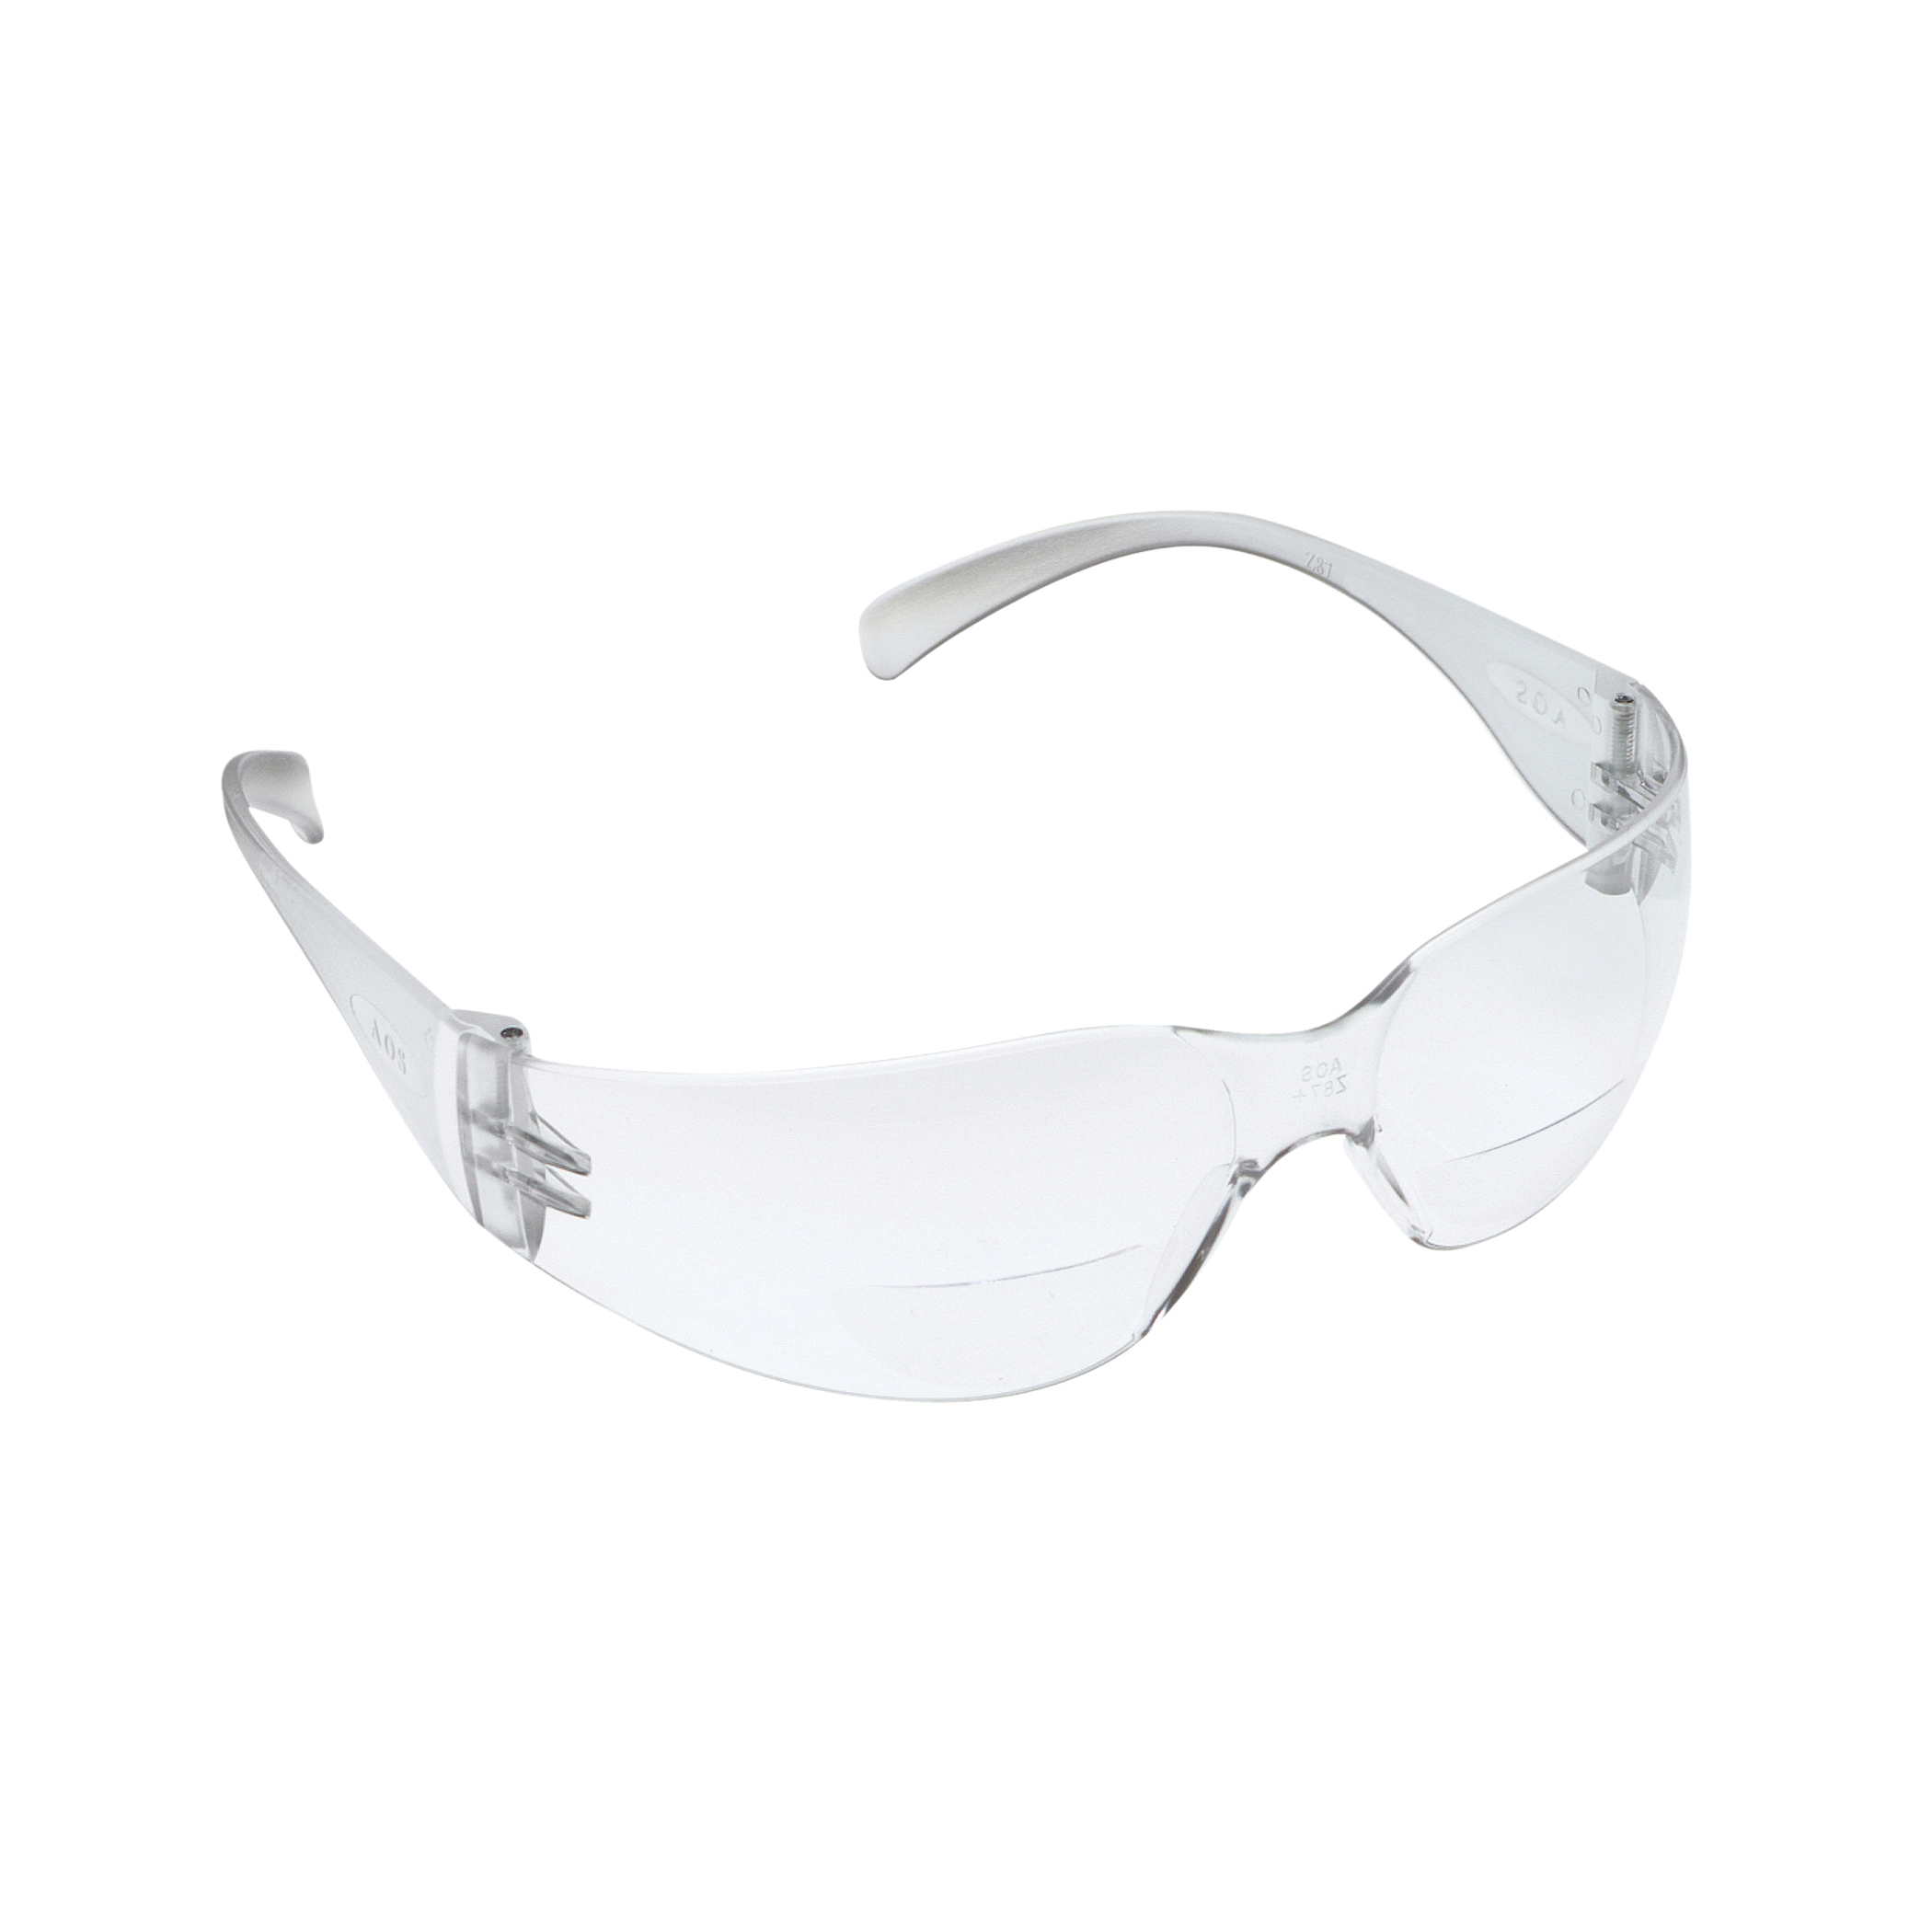 3M™ Aearo Virtua™ 078371-62119 Bi-Focal Lens Economy Lightweight Reader Protective Eyewear, 1.5 Diopter, Clear Lens, Clear, Plastic Frame, Polycarbonate Lens, 99.9 % UV Protection, ANSI Z87.1-2015